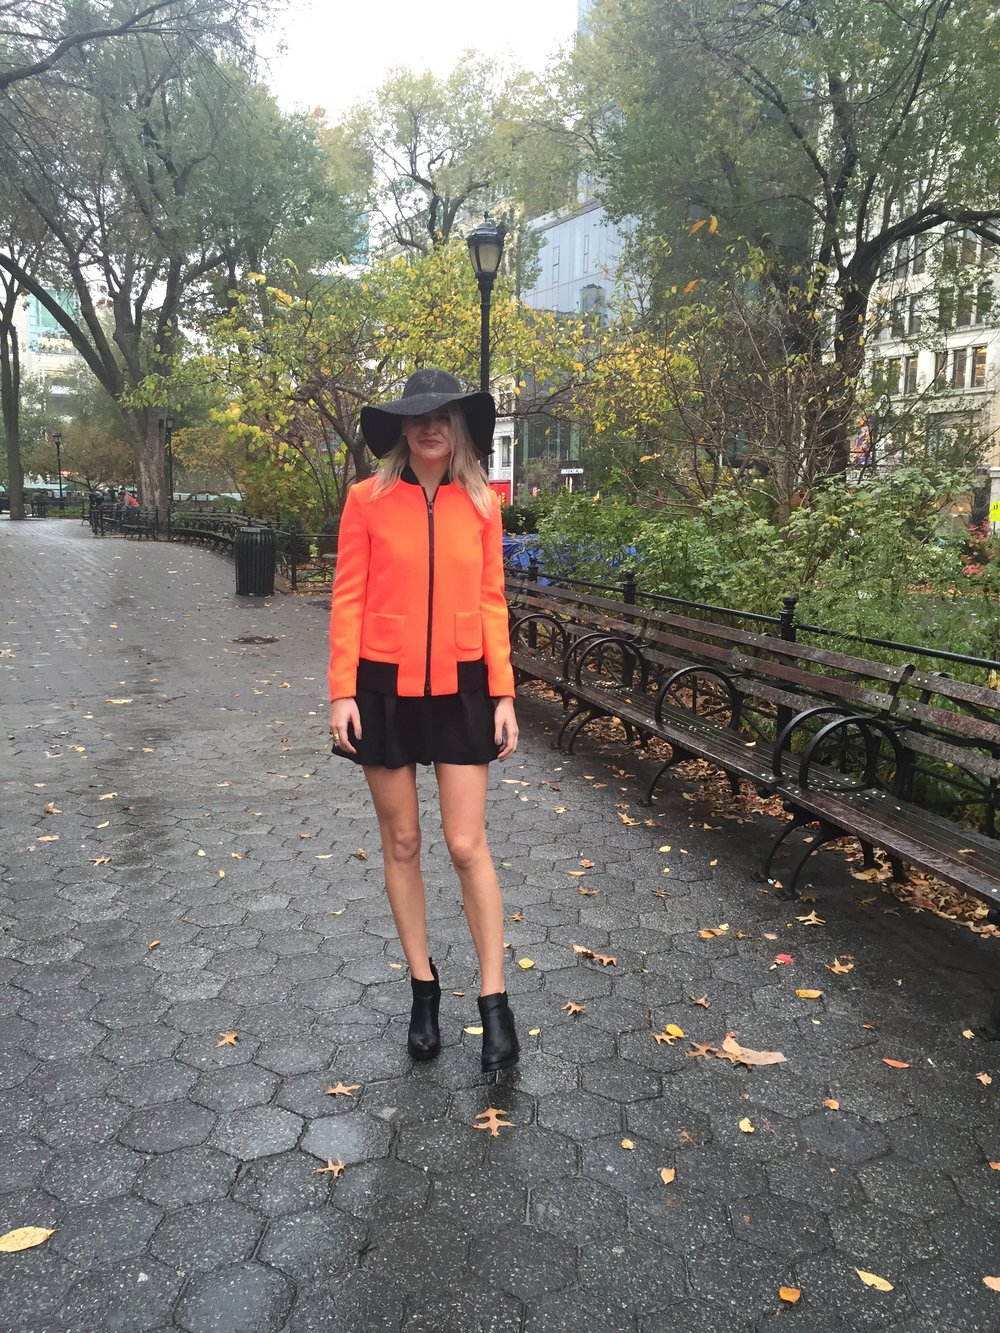 Floppy Hat: American Apparel, Neoprene Bomber: Valentino, Black Dress: Beacon's Closet, Black Booties: Sam & Libby, Location: Union Square Park, Photos: Elena Baltzoglou